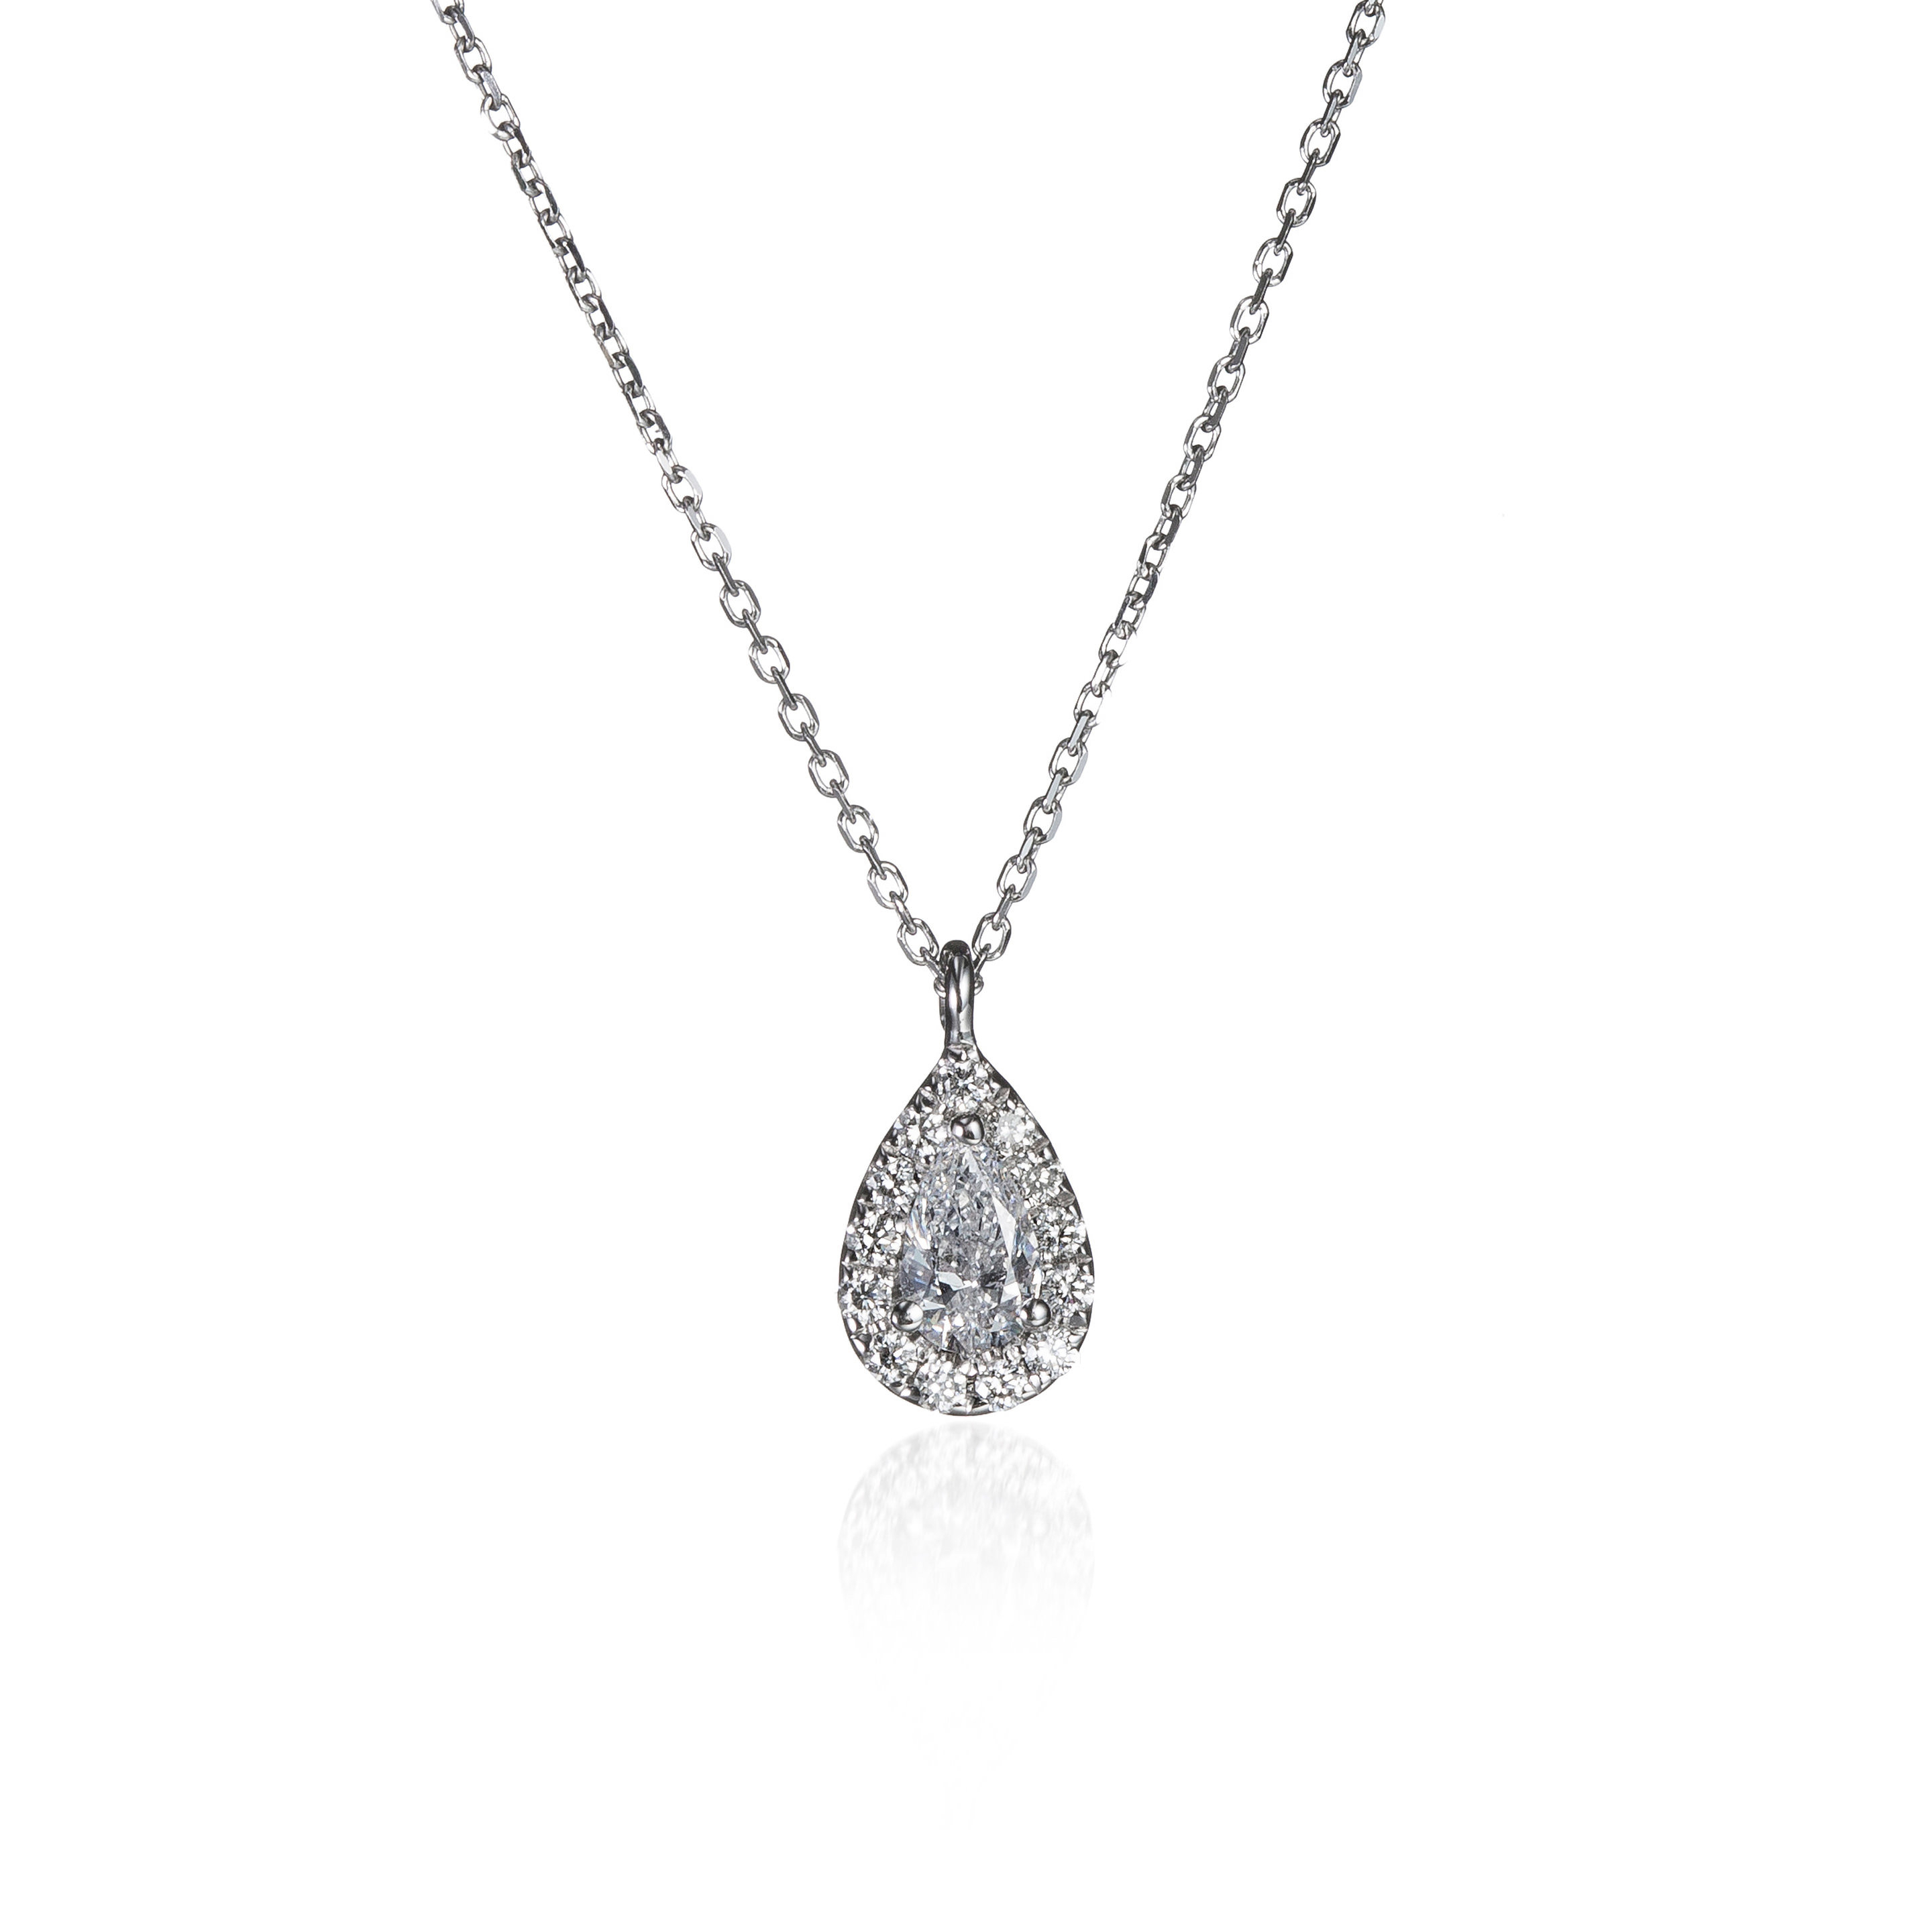 Pear Shaped Halo Diamond Necklace With Most Popular Sparkling Square Halo Pendant Necklaces (View 10 of 25)